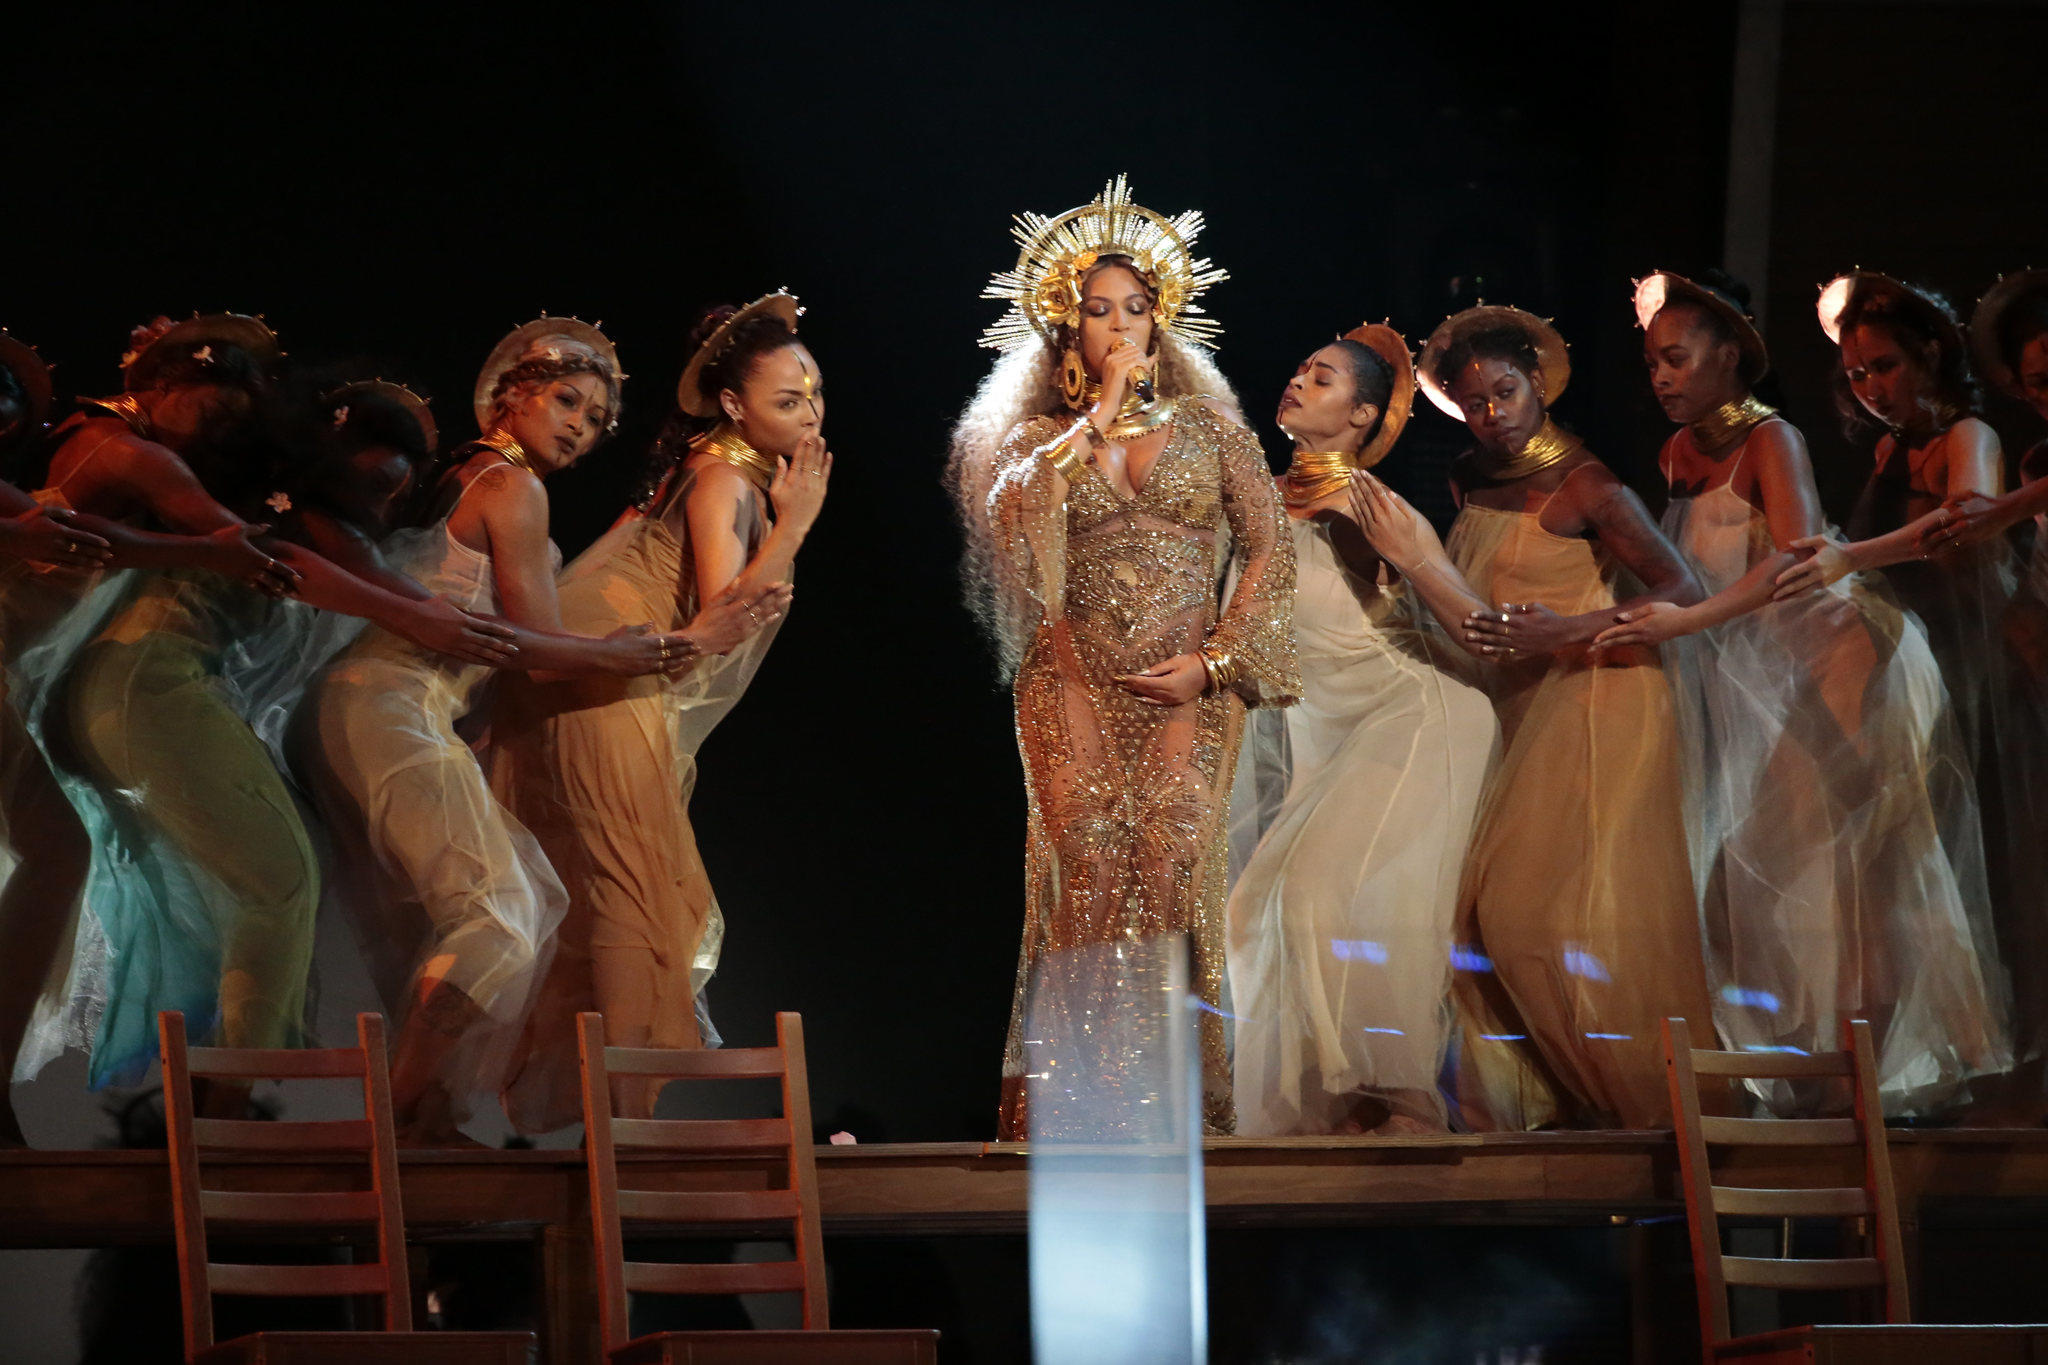 Beyoncé performs at the 59th Grammy Awards. (Robert Gauthier / Los Angeles Times)